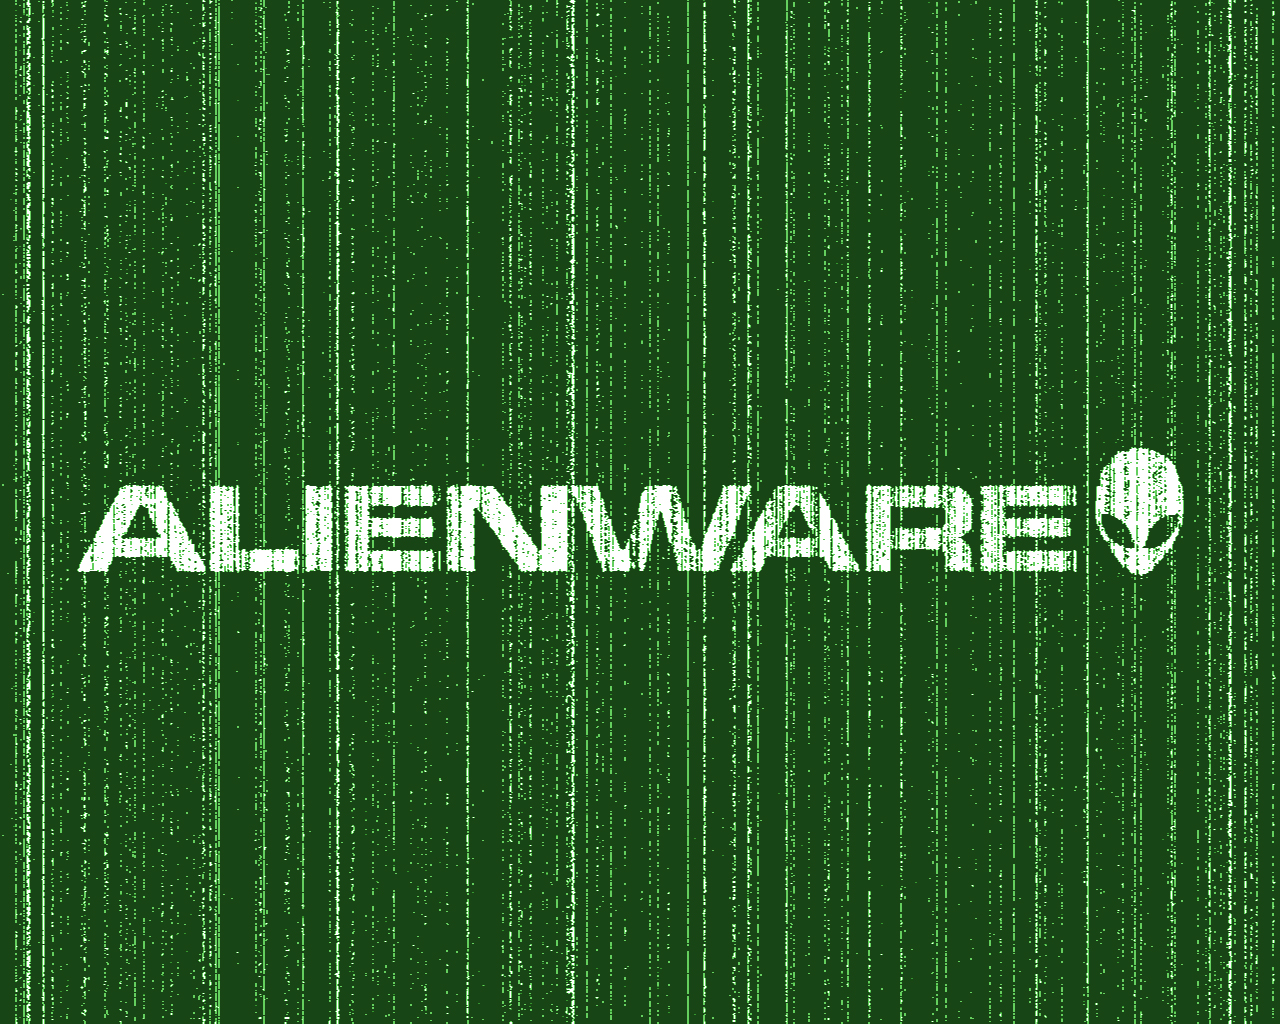 3d Wallpaper Windows 7 Animated Alienware Matrix Wallpapers Alienware Matrix Stock Photos